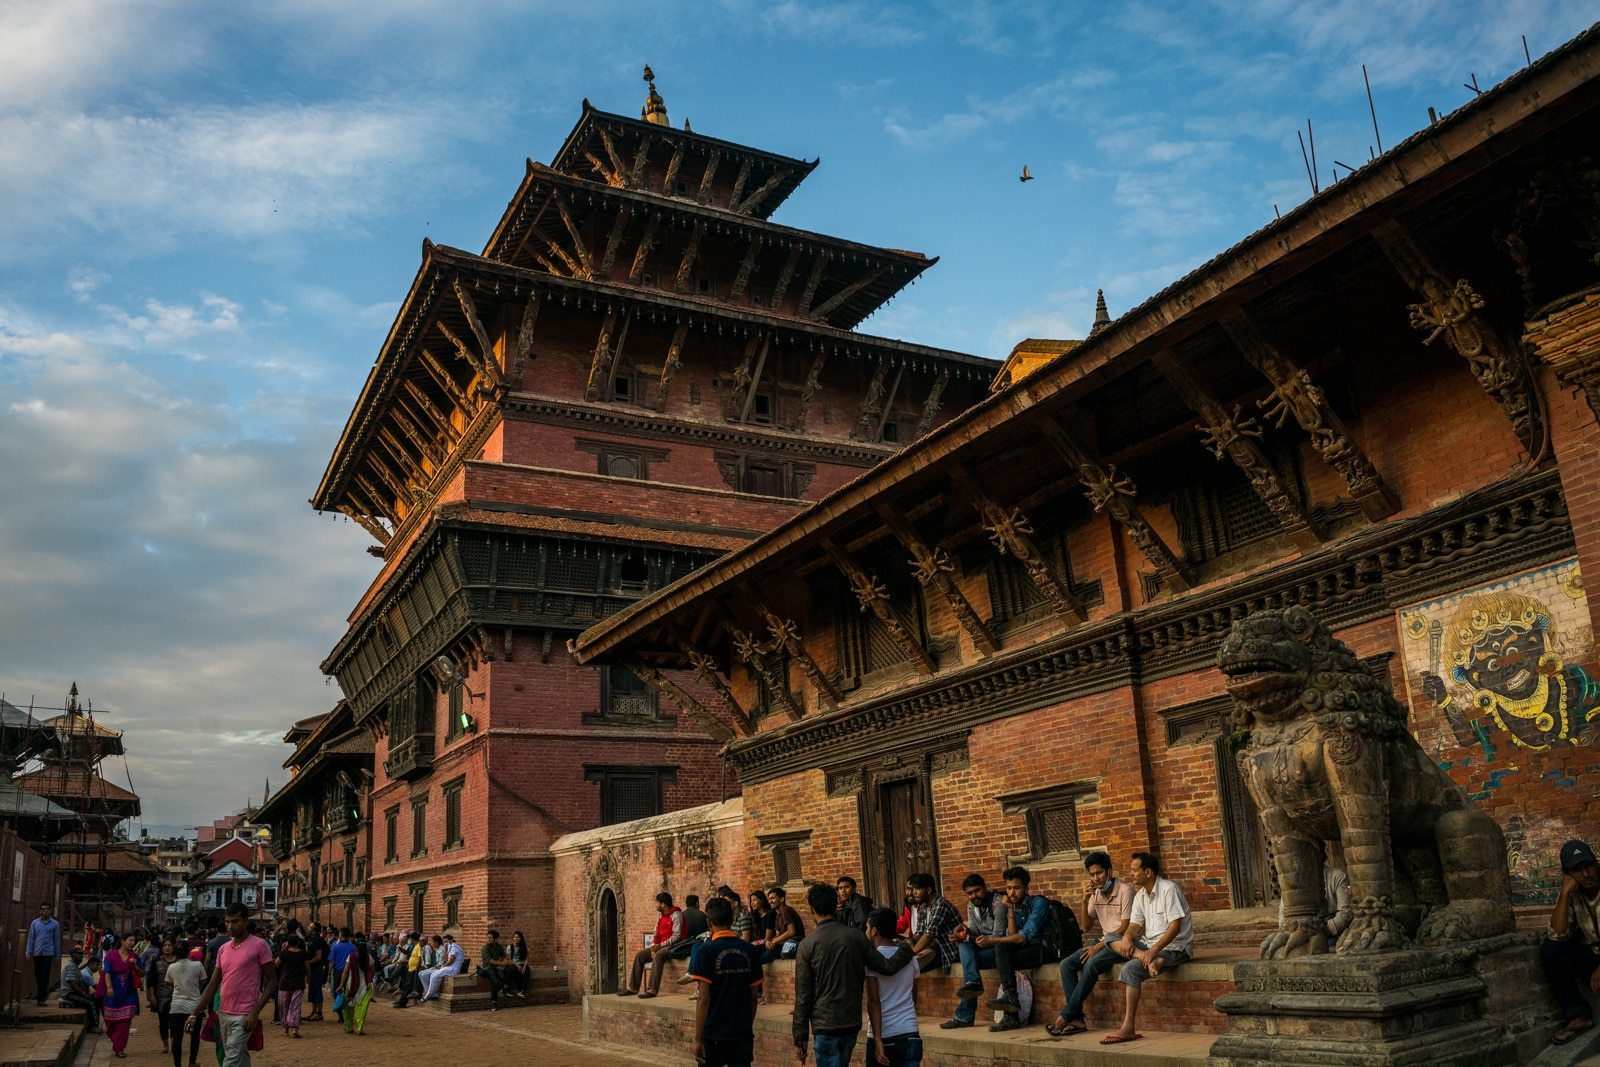 Best places for digital nomads to work in Patan, Nepal - Patan Durbar Square - Lost With Purpose travel blog